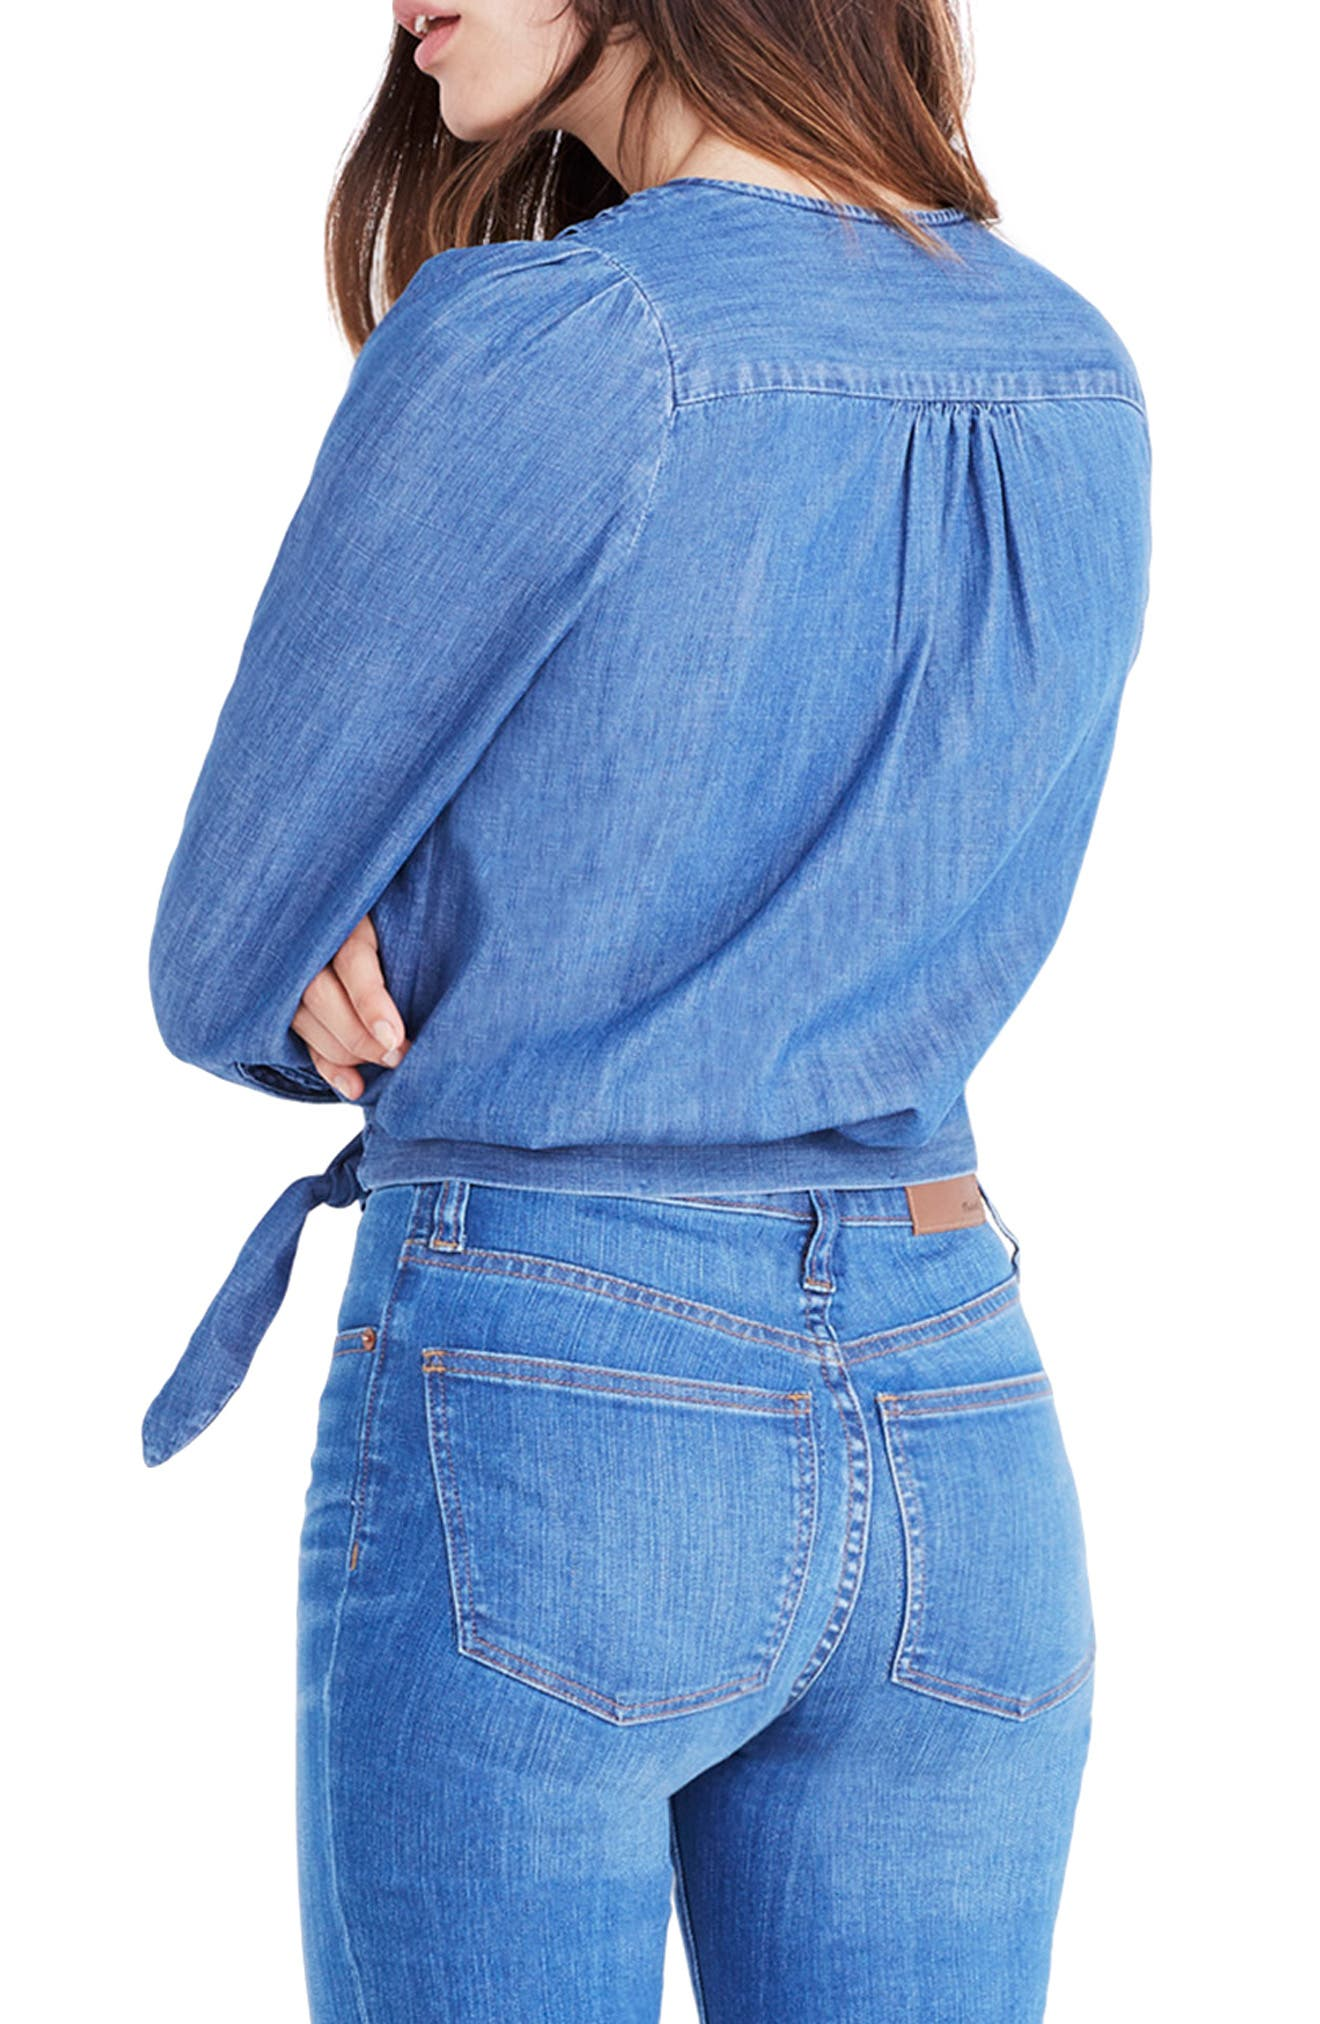 Denim Wrap Blouse,                             Alternate thumbnail 2, color,                             DESCANSO WASH